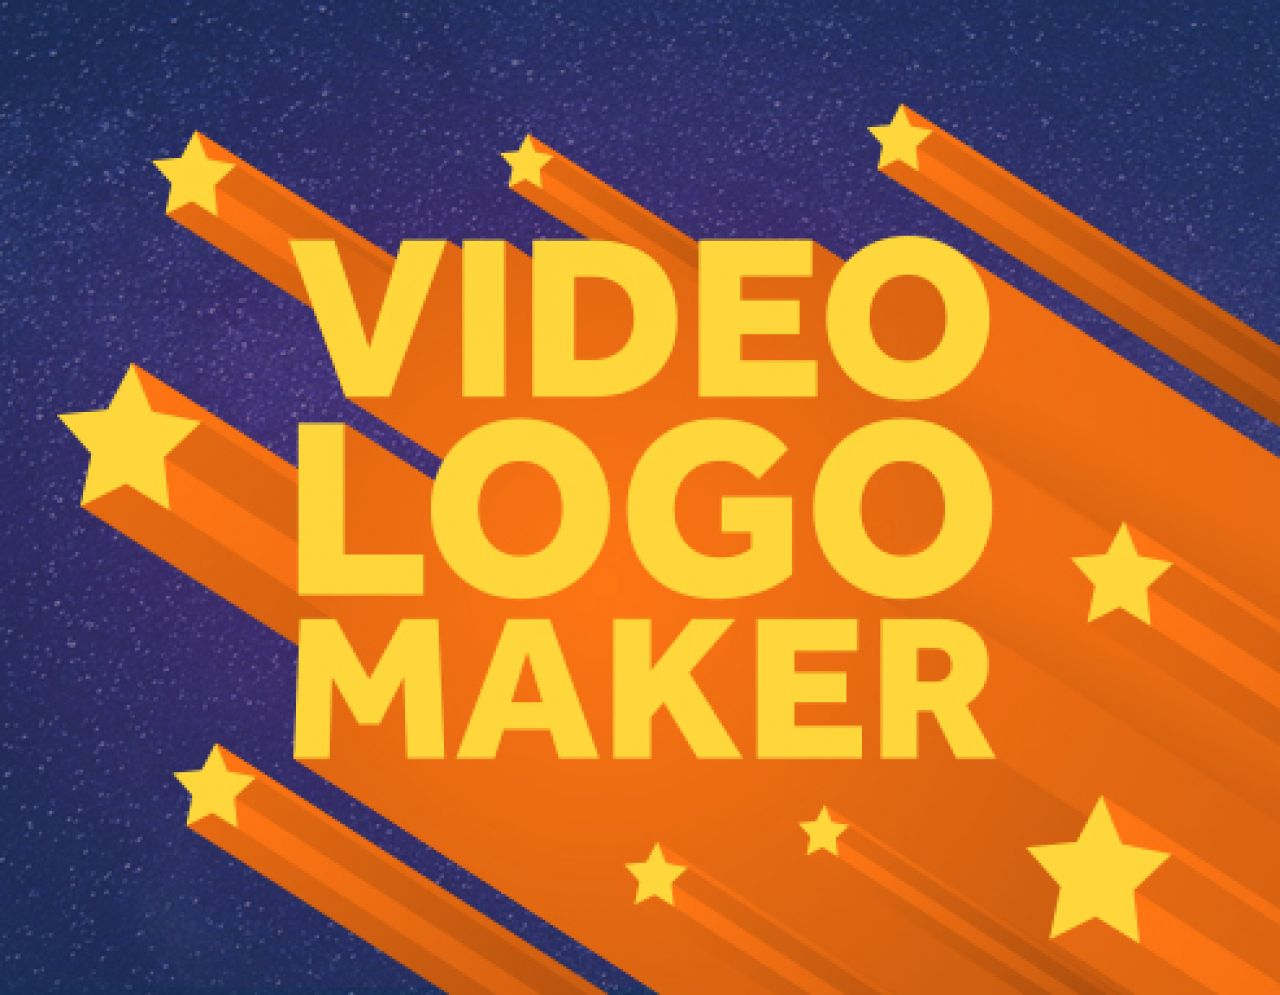 Video logo maker